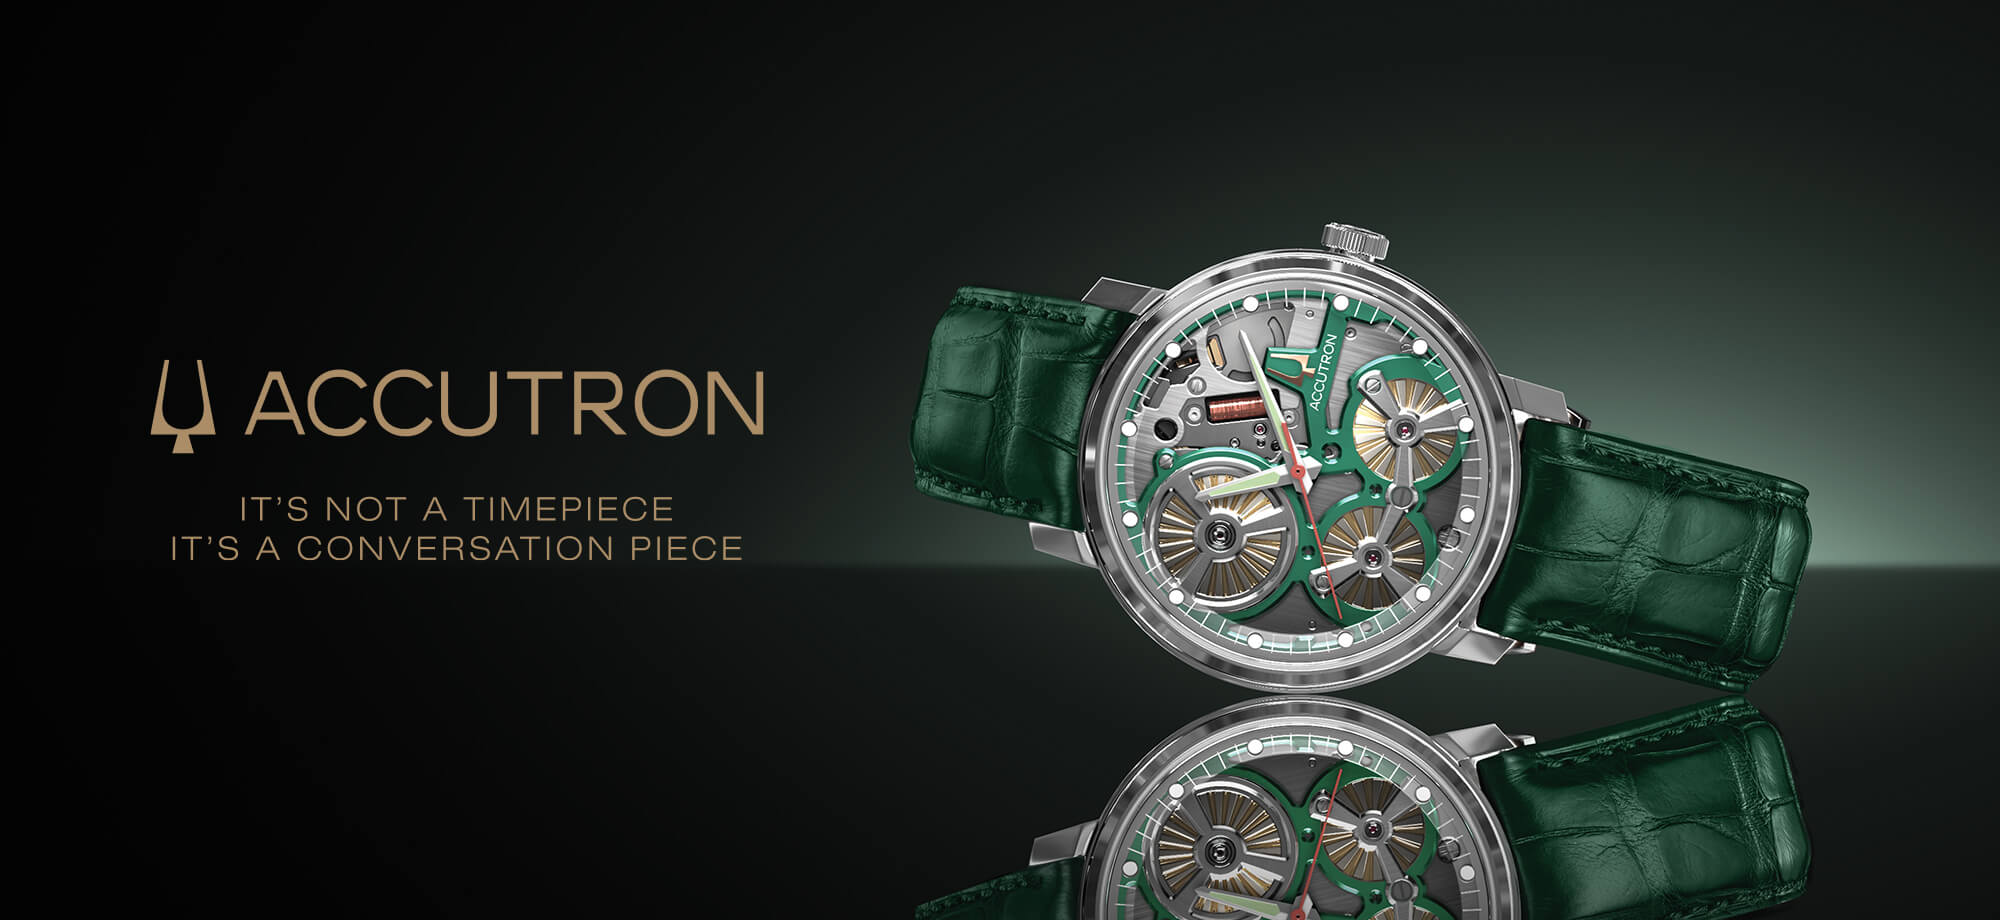 View Accutron Watches at RF Moeller